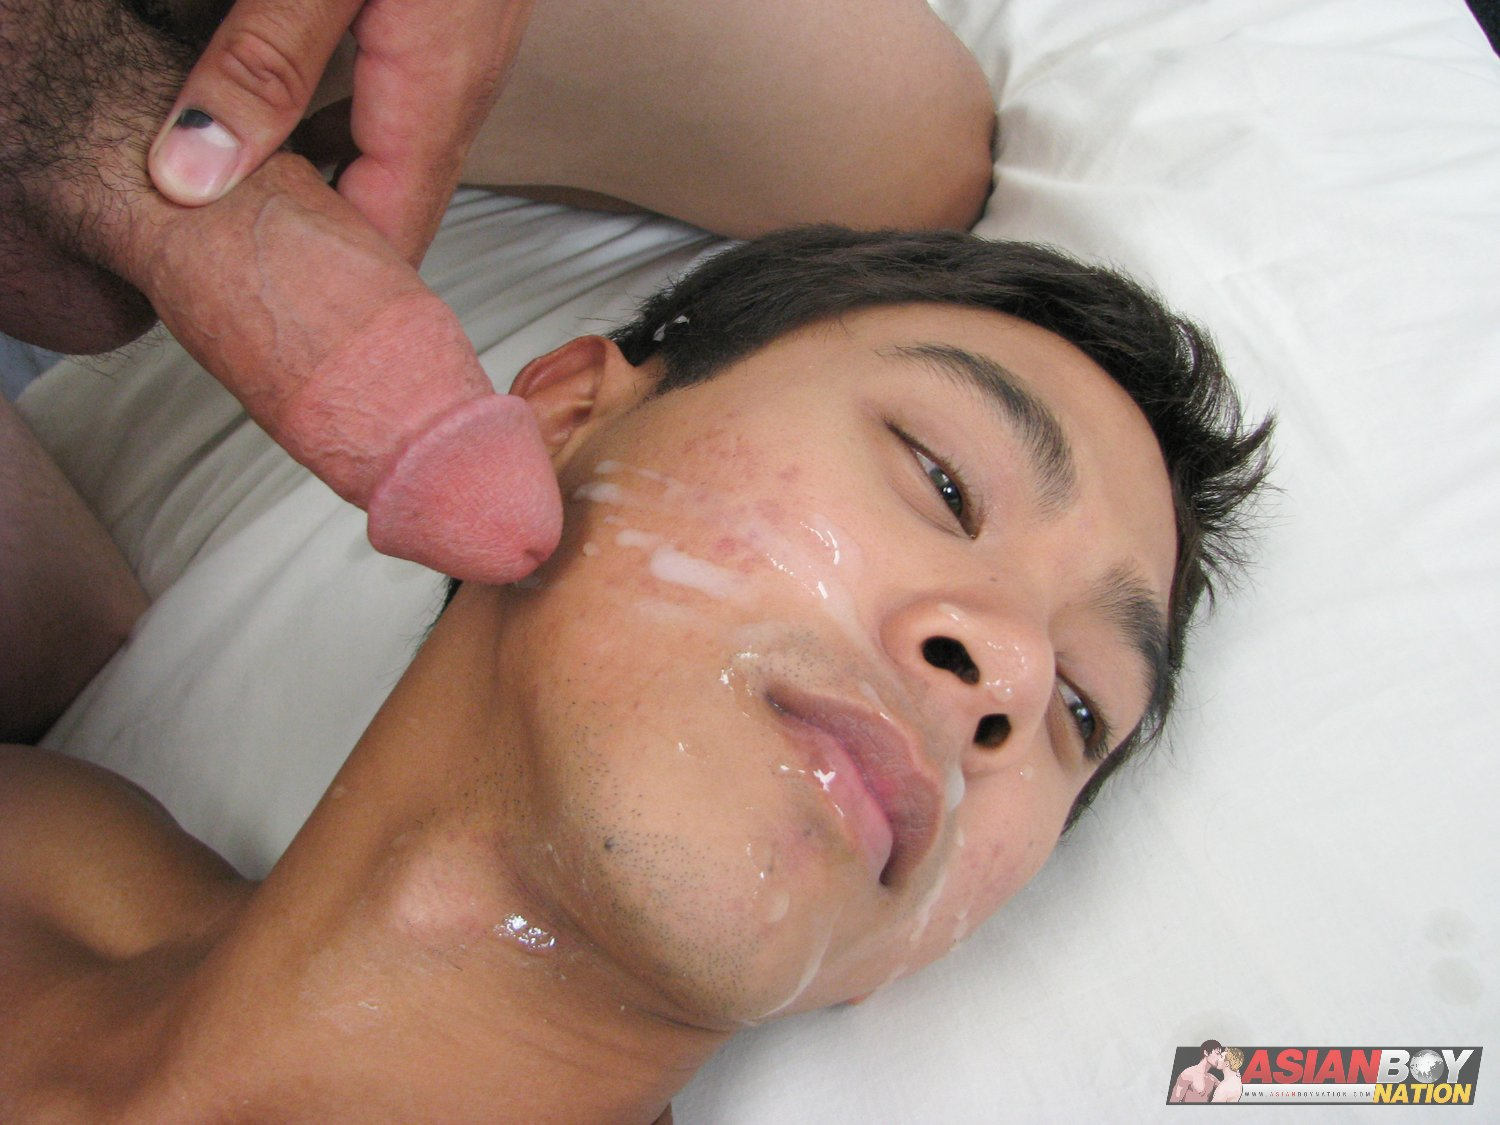 Asian-Boy-Nation-Big-Asian-Cock-Cumfest-15 Sexy Uncut Asian Gets a Face Full of Cum From 2 Hot Twinks